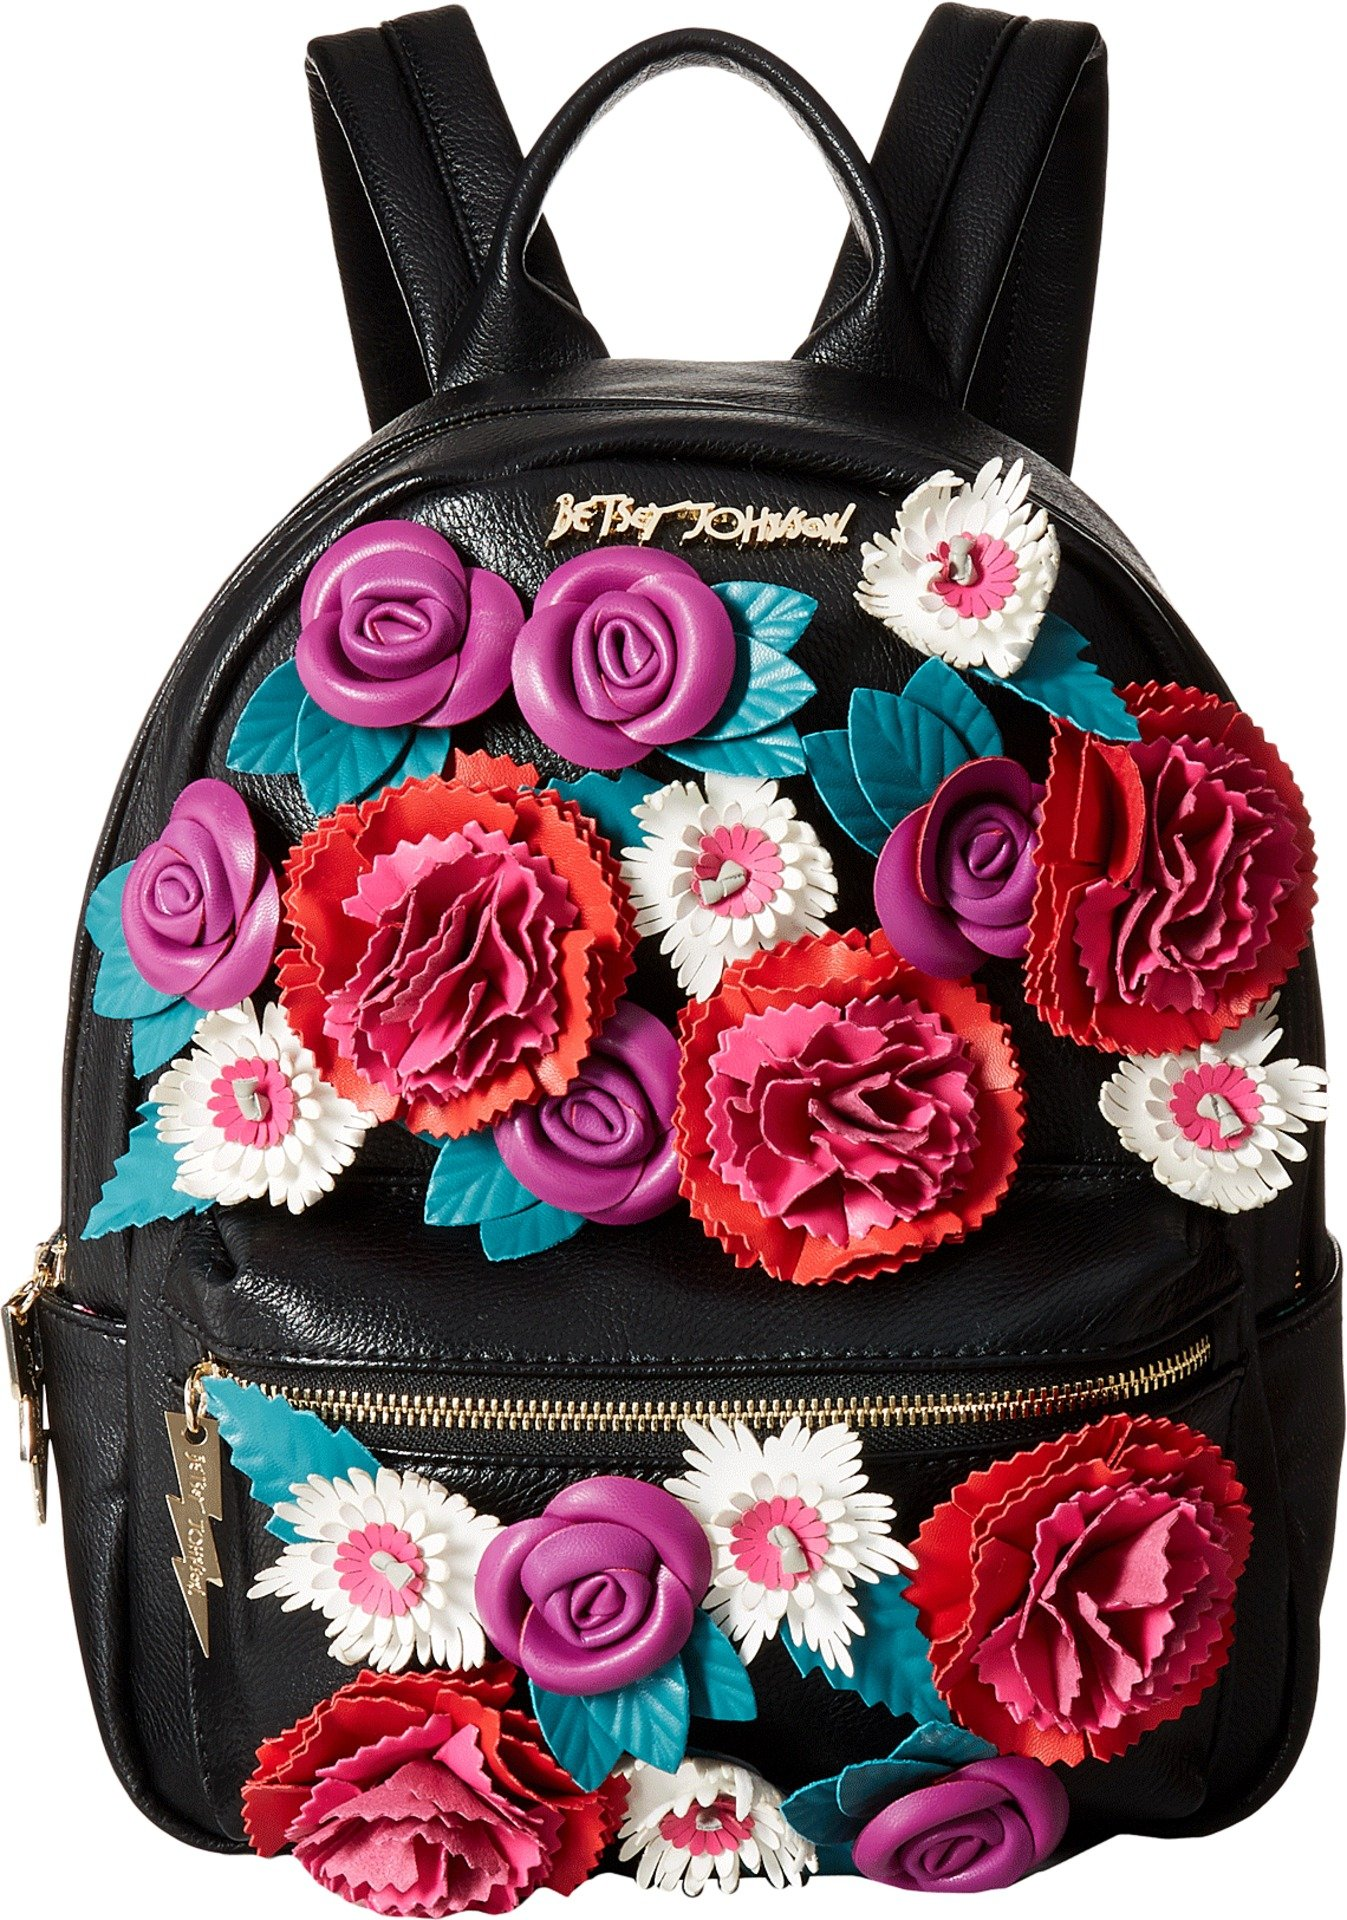 Buy Gypsy Rose Backpack Now!